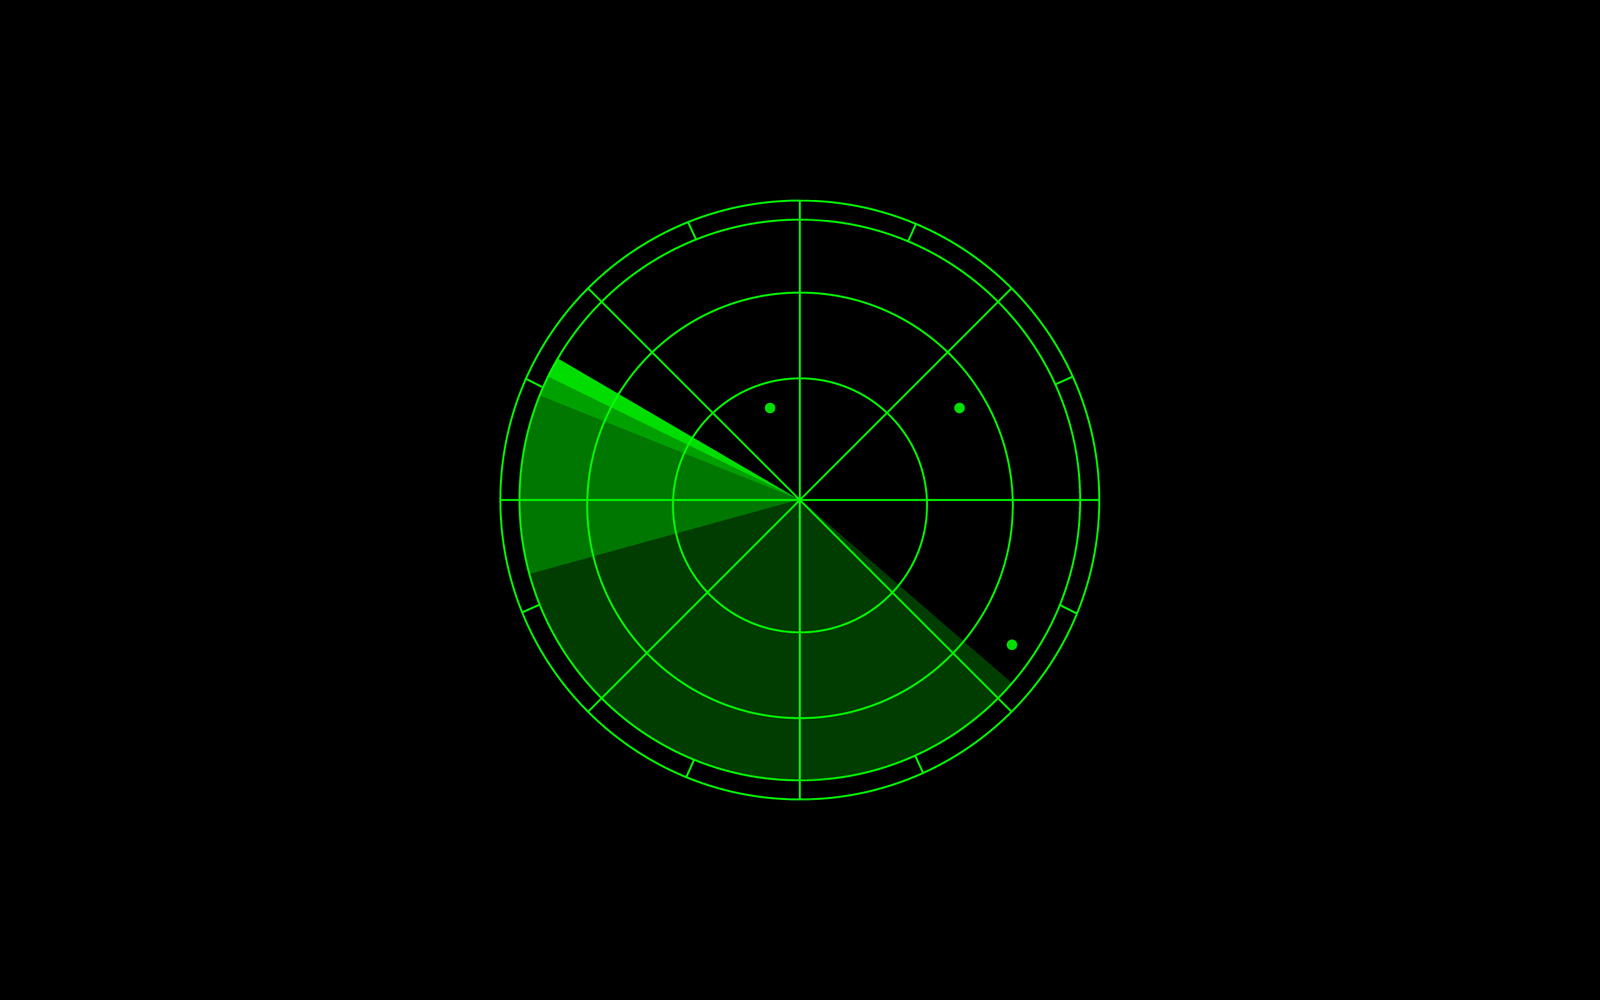 Radar Technology PPT Backgrounds